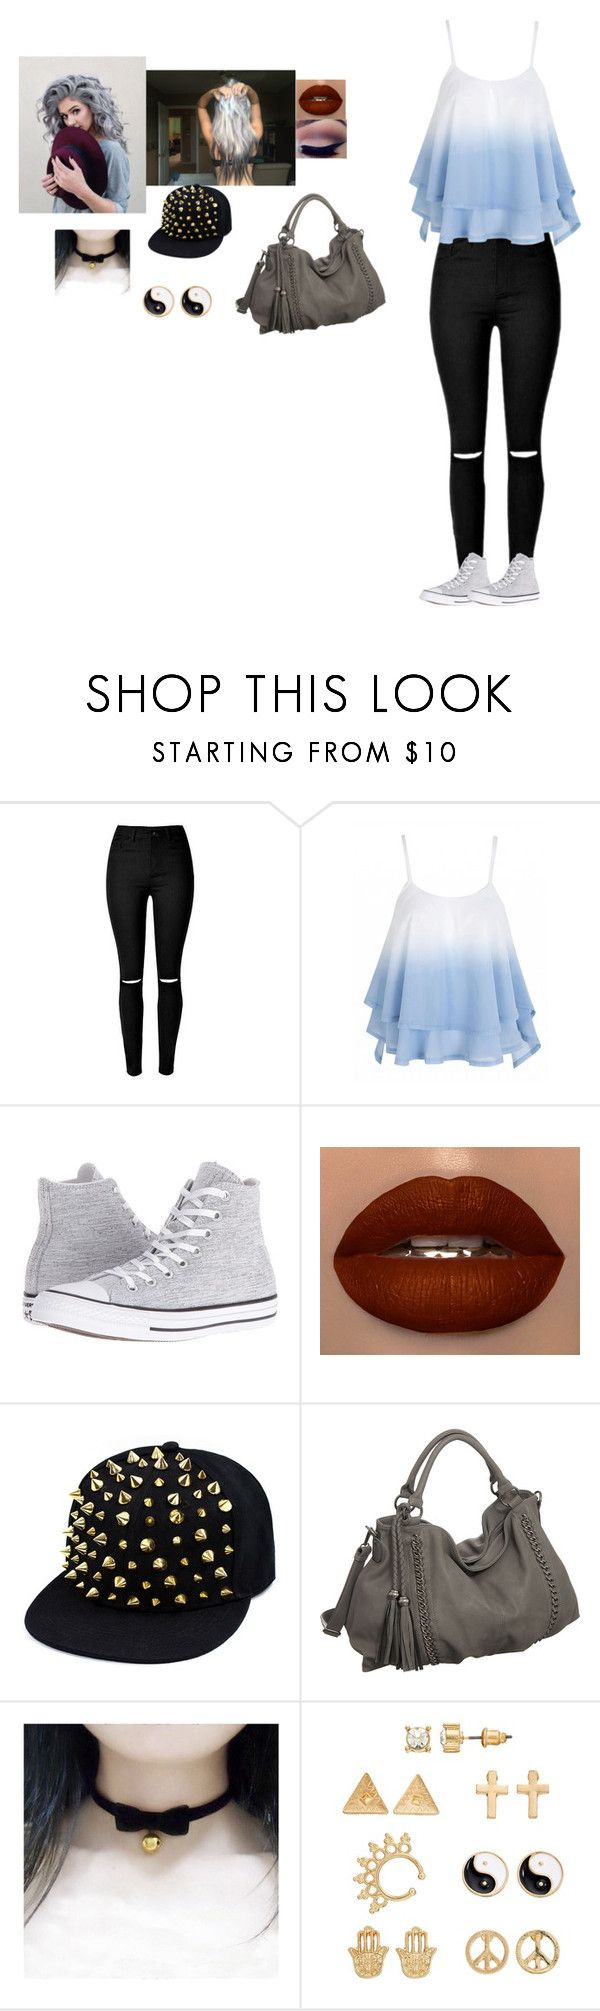 """Untitled #964"" by septicplier-mangle ❤ liked on Polyvore featuring Converse, Melie Bianco, COS and Mudd"